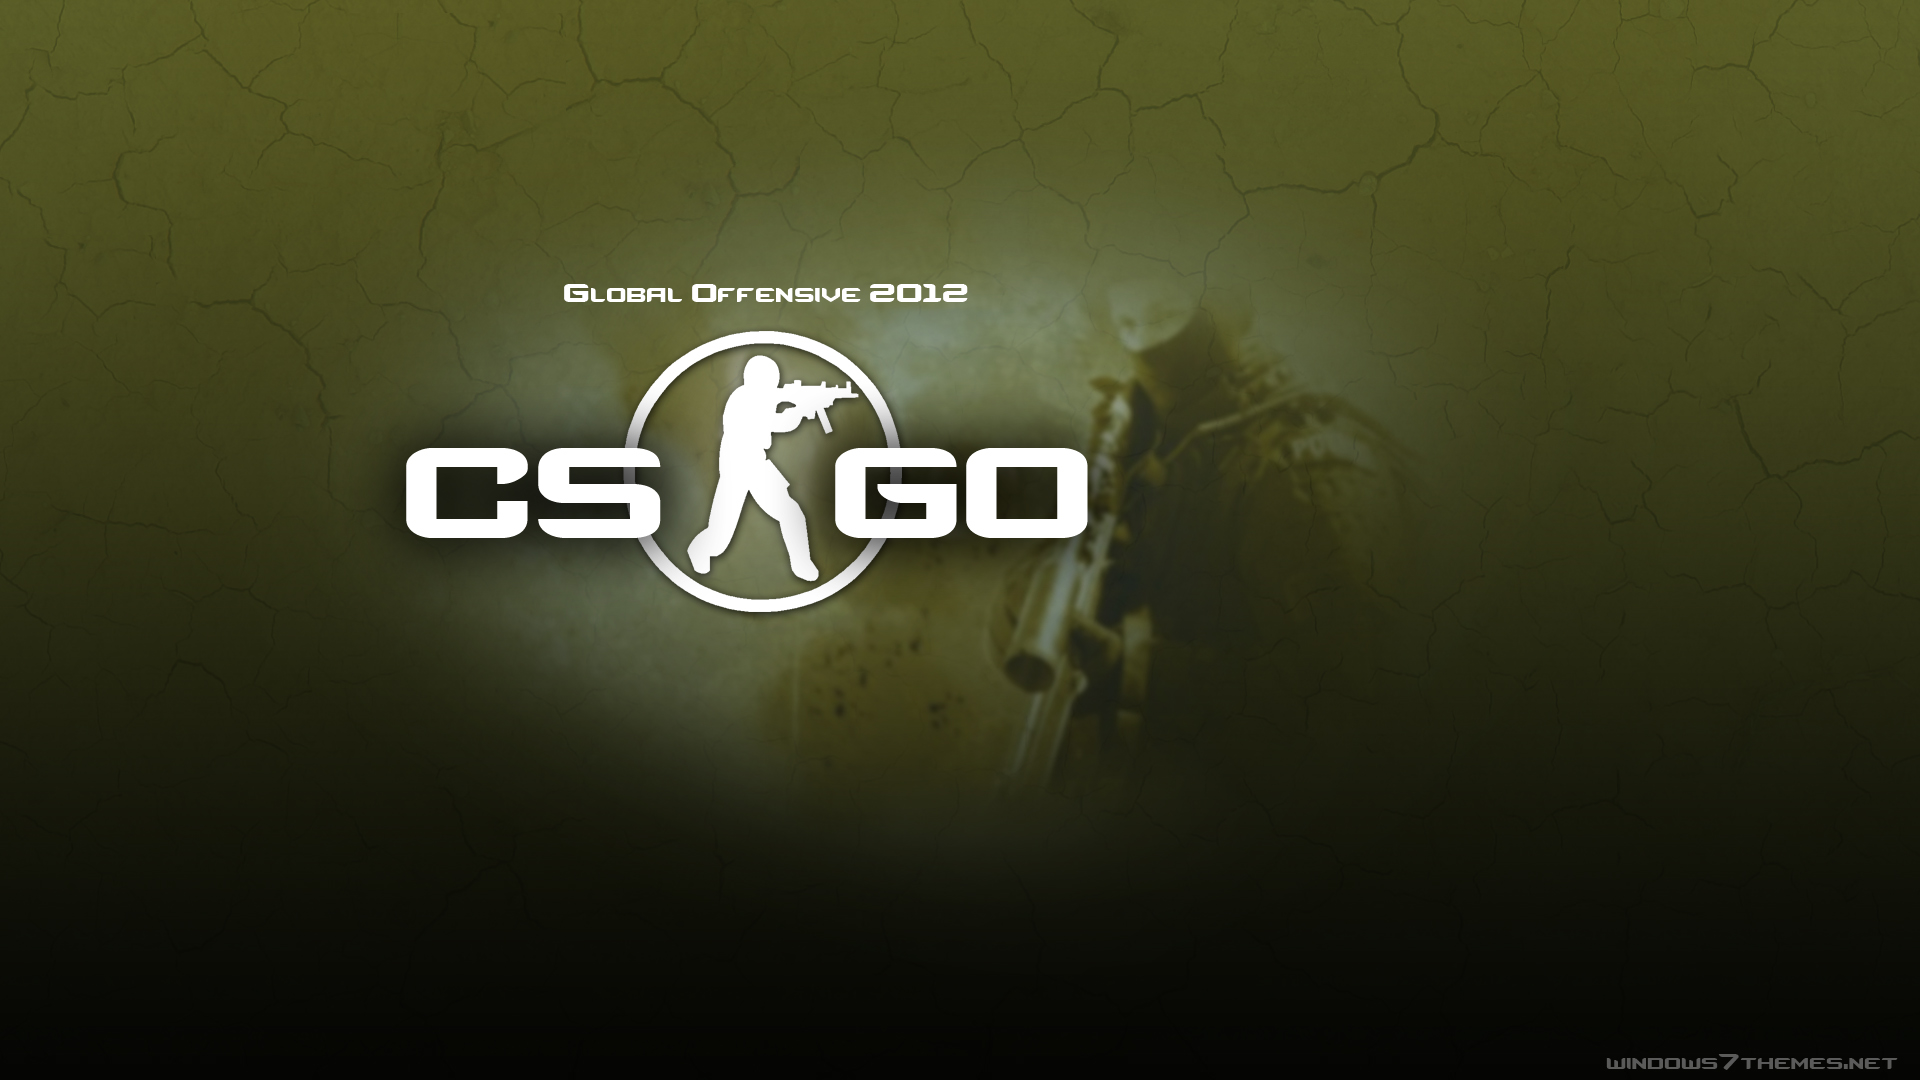 http://windows7themes.net/wallpaper_large/counter-strike-global-offensive-wallpaper-1-large-hd-1920.jpg